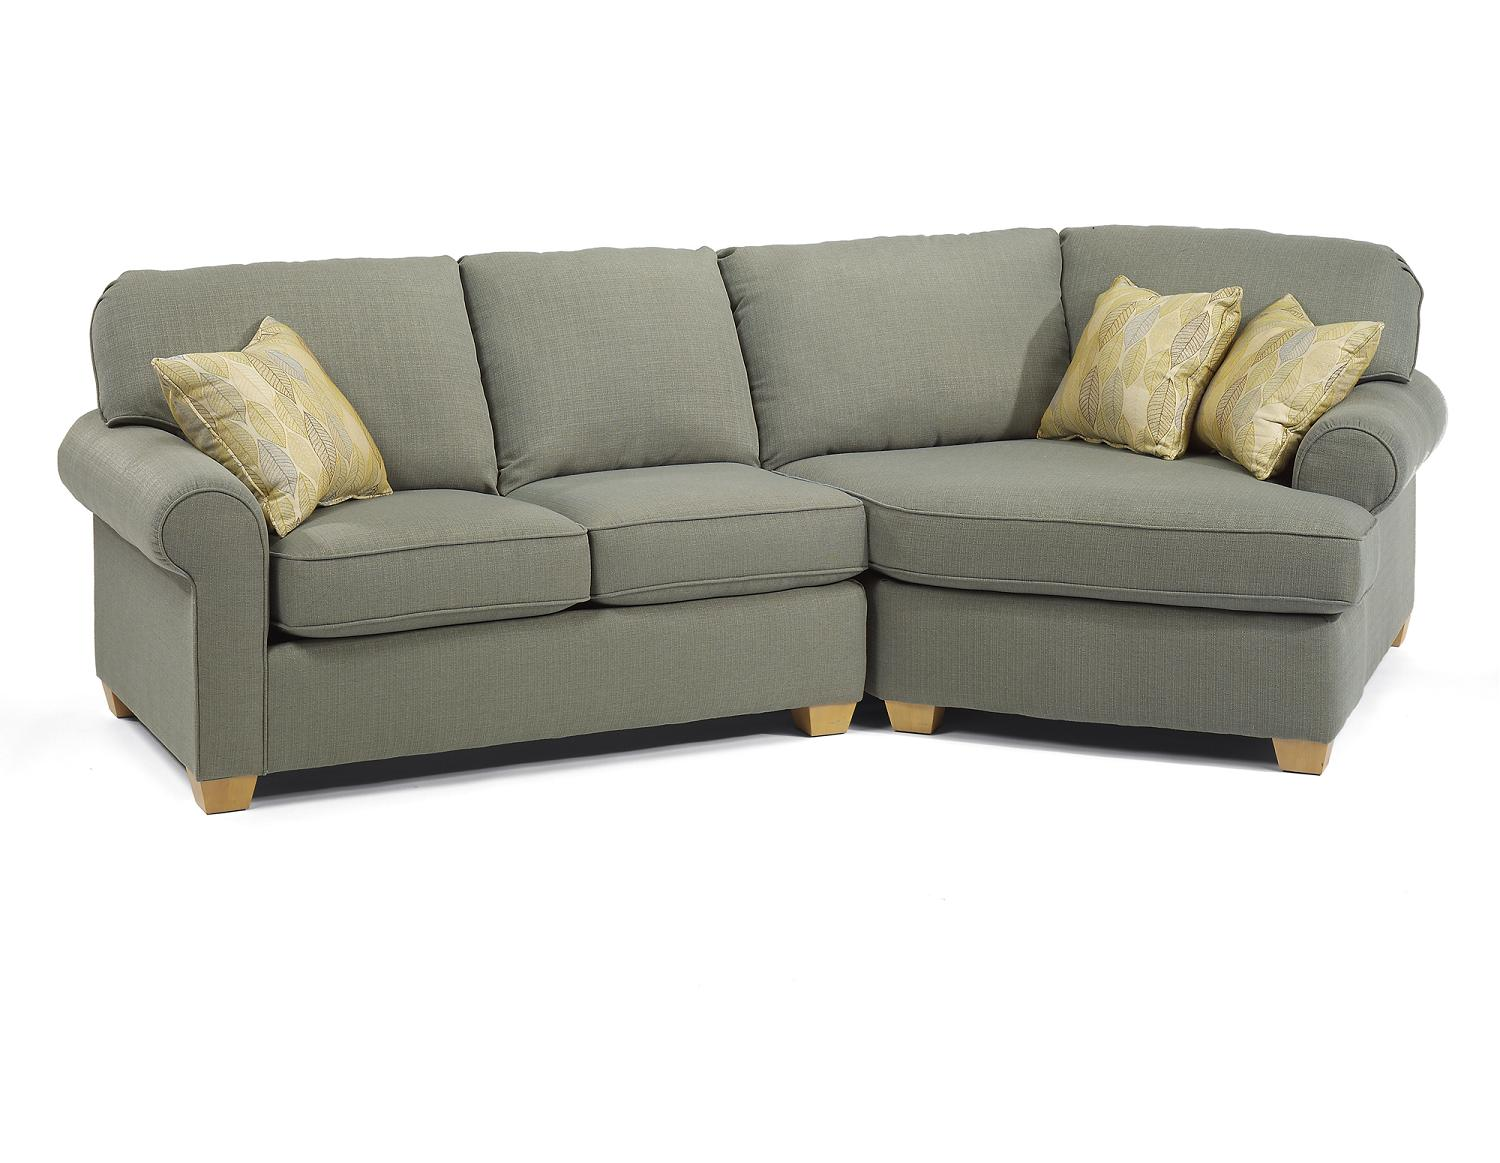 Cheap sectional sofas under 100 couch sofa ideas for Cheap couches